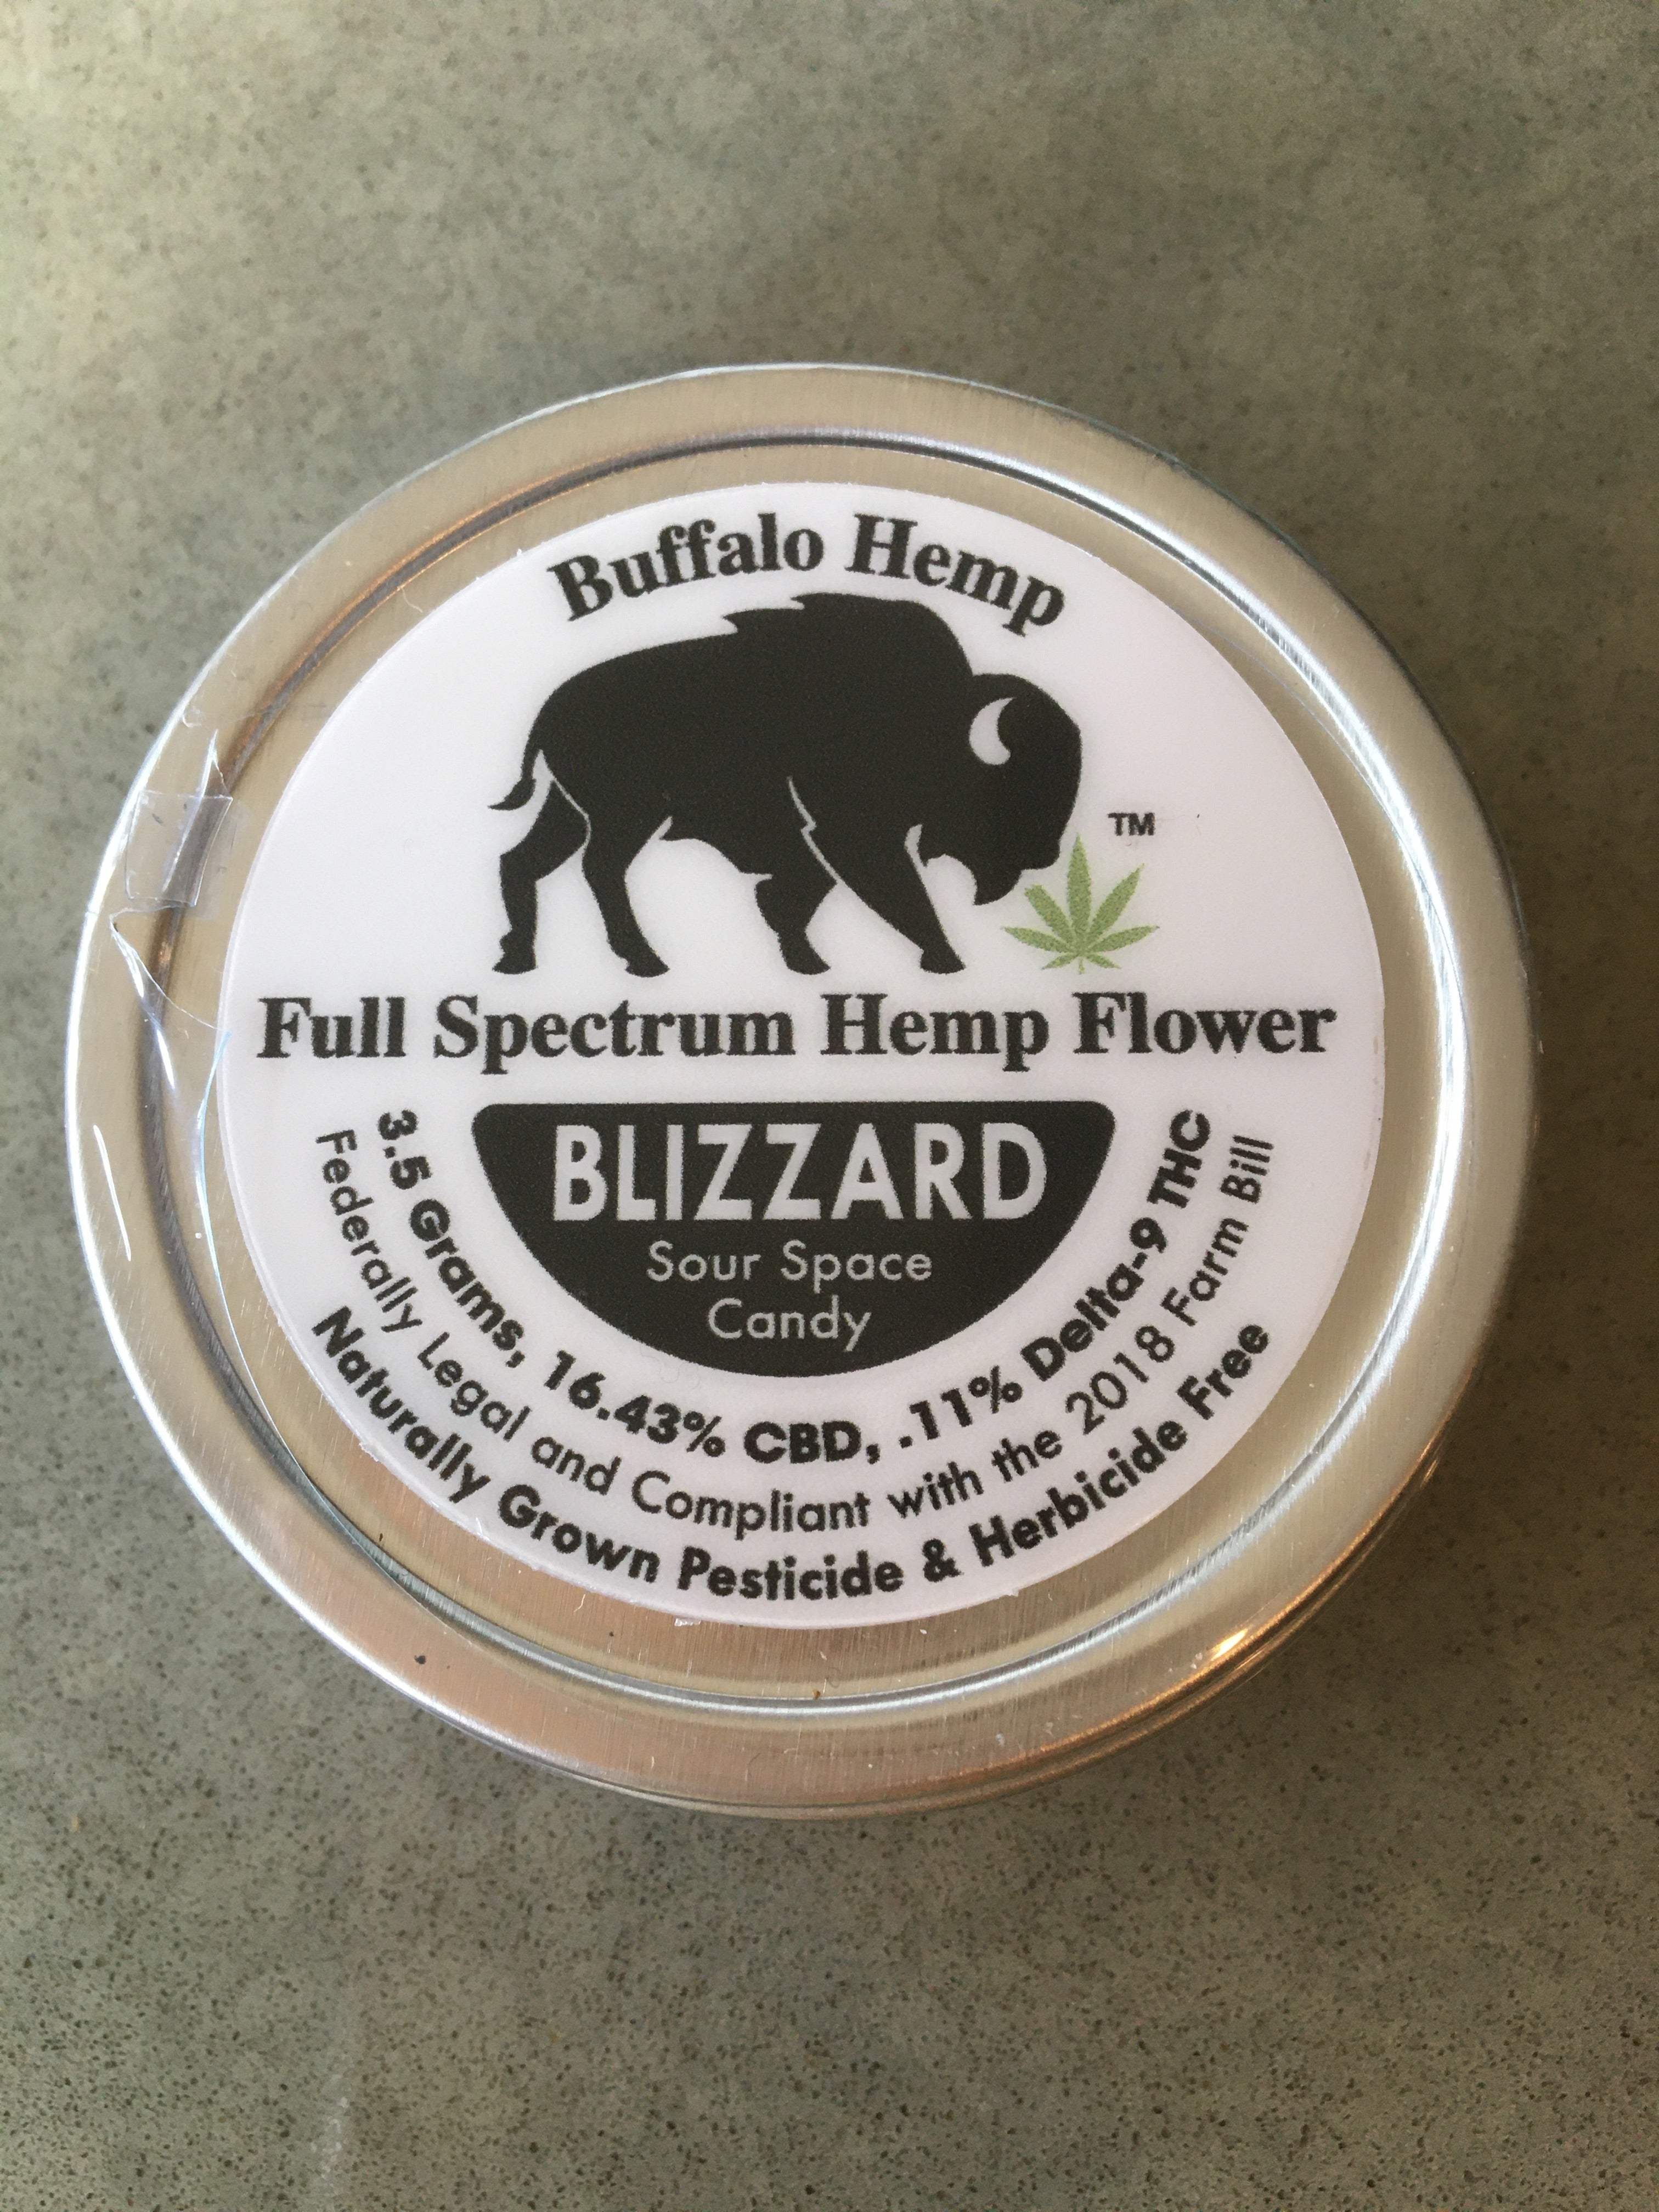 Blizzard Sour Space Candy Can Full Spectrum Hemp Flower (3.5g) 1/8oz